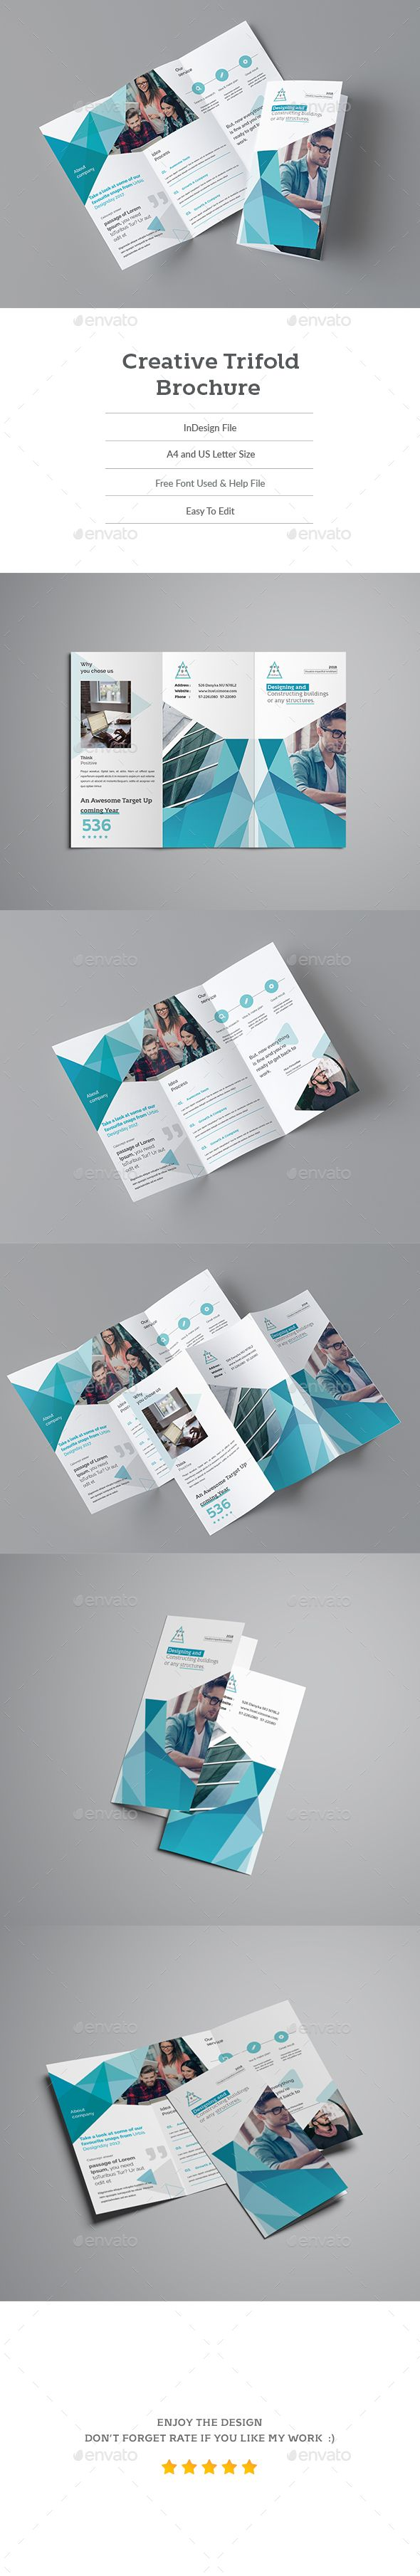 Clean and modern brochure for your business marketing and promotion your offer . you can easily change its text, color & shapes as per your requirements. A4 & US Letter Size Template InDesign File INDD, INDT & IDML Files Included. High-quality clean & creative designs Organized Layered Print Ready with CMYK Very easy to edit & customise 	abstract, brochure, business, corporate, creative, fold, fresh, indesign, information, multipurpose, people, product, promotion, template, tri